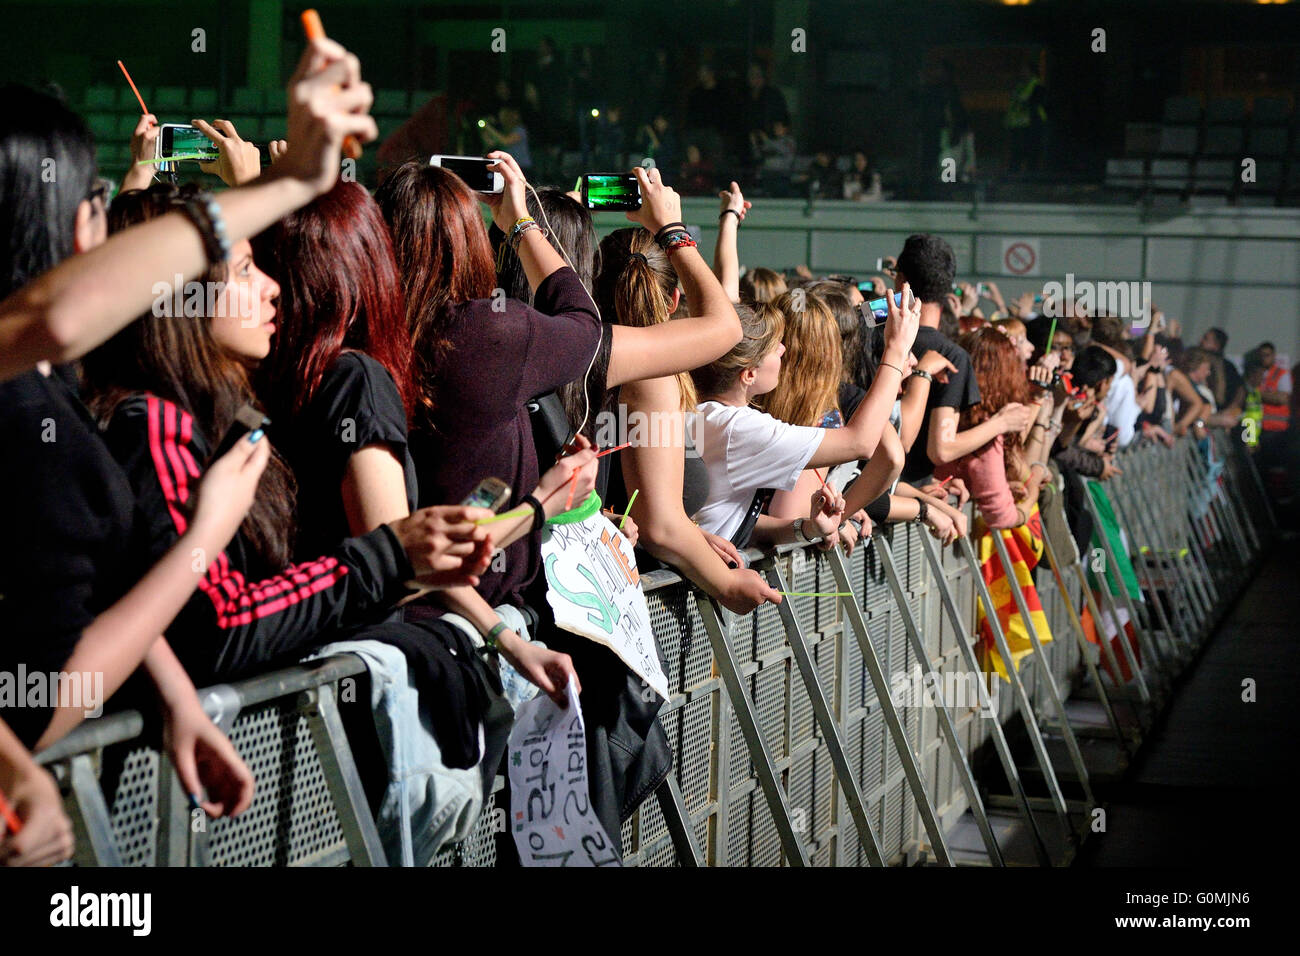 BARCELONA - MAR 30: Crowd in a concert at St. Jordi Club stage on March 18, 2015 in Barcelona, Spain. - Stock Image